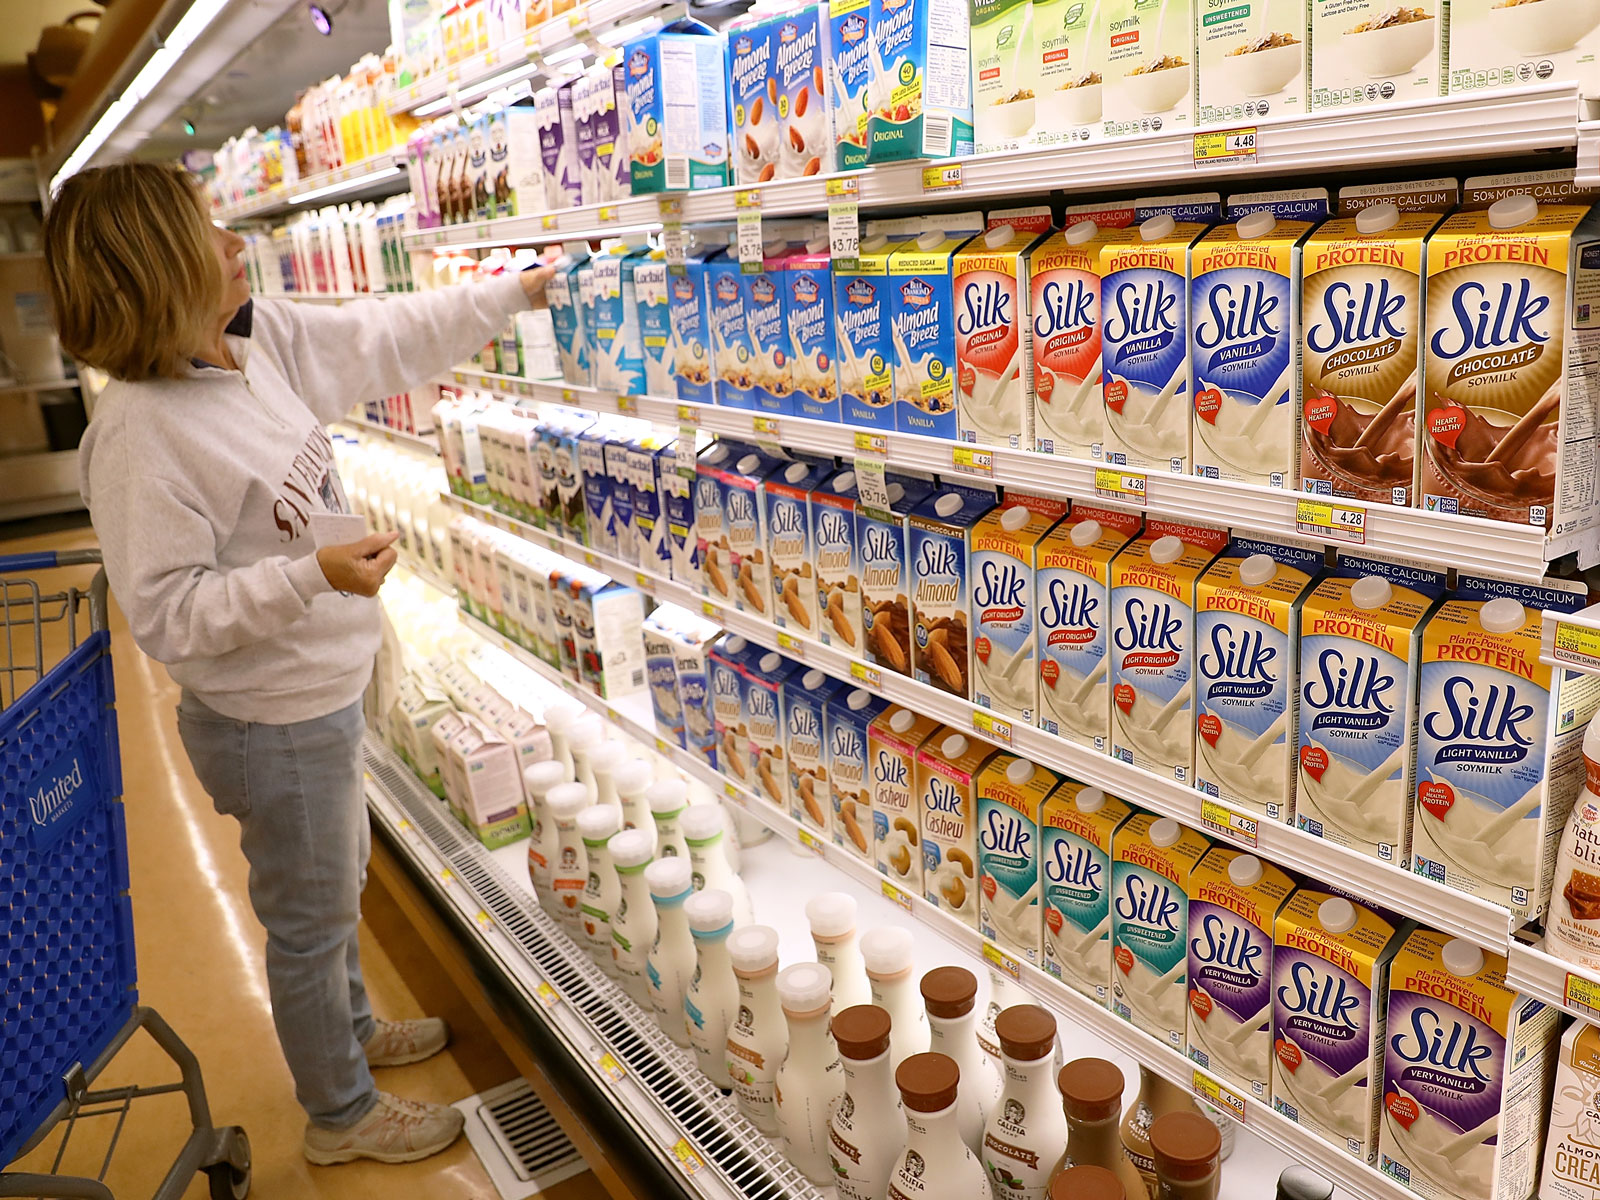 Nearly Half of Shoppers Buy Both Dairy and Plant-Based Milk, Survey Says